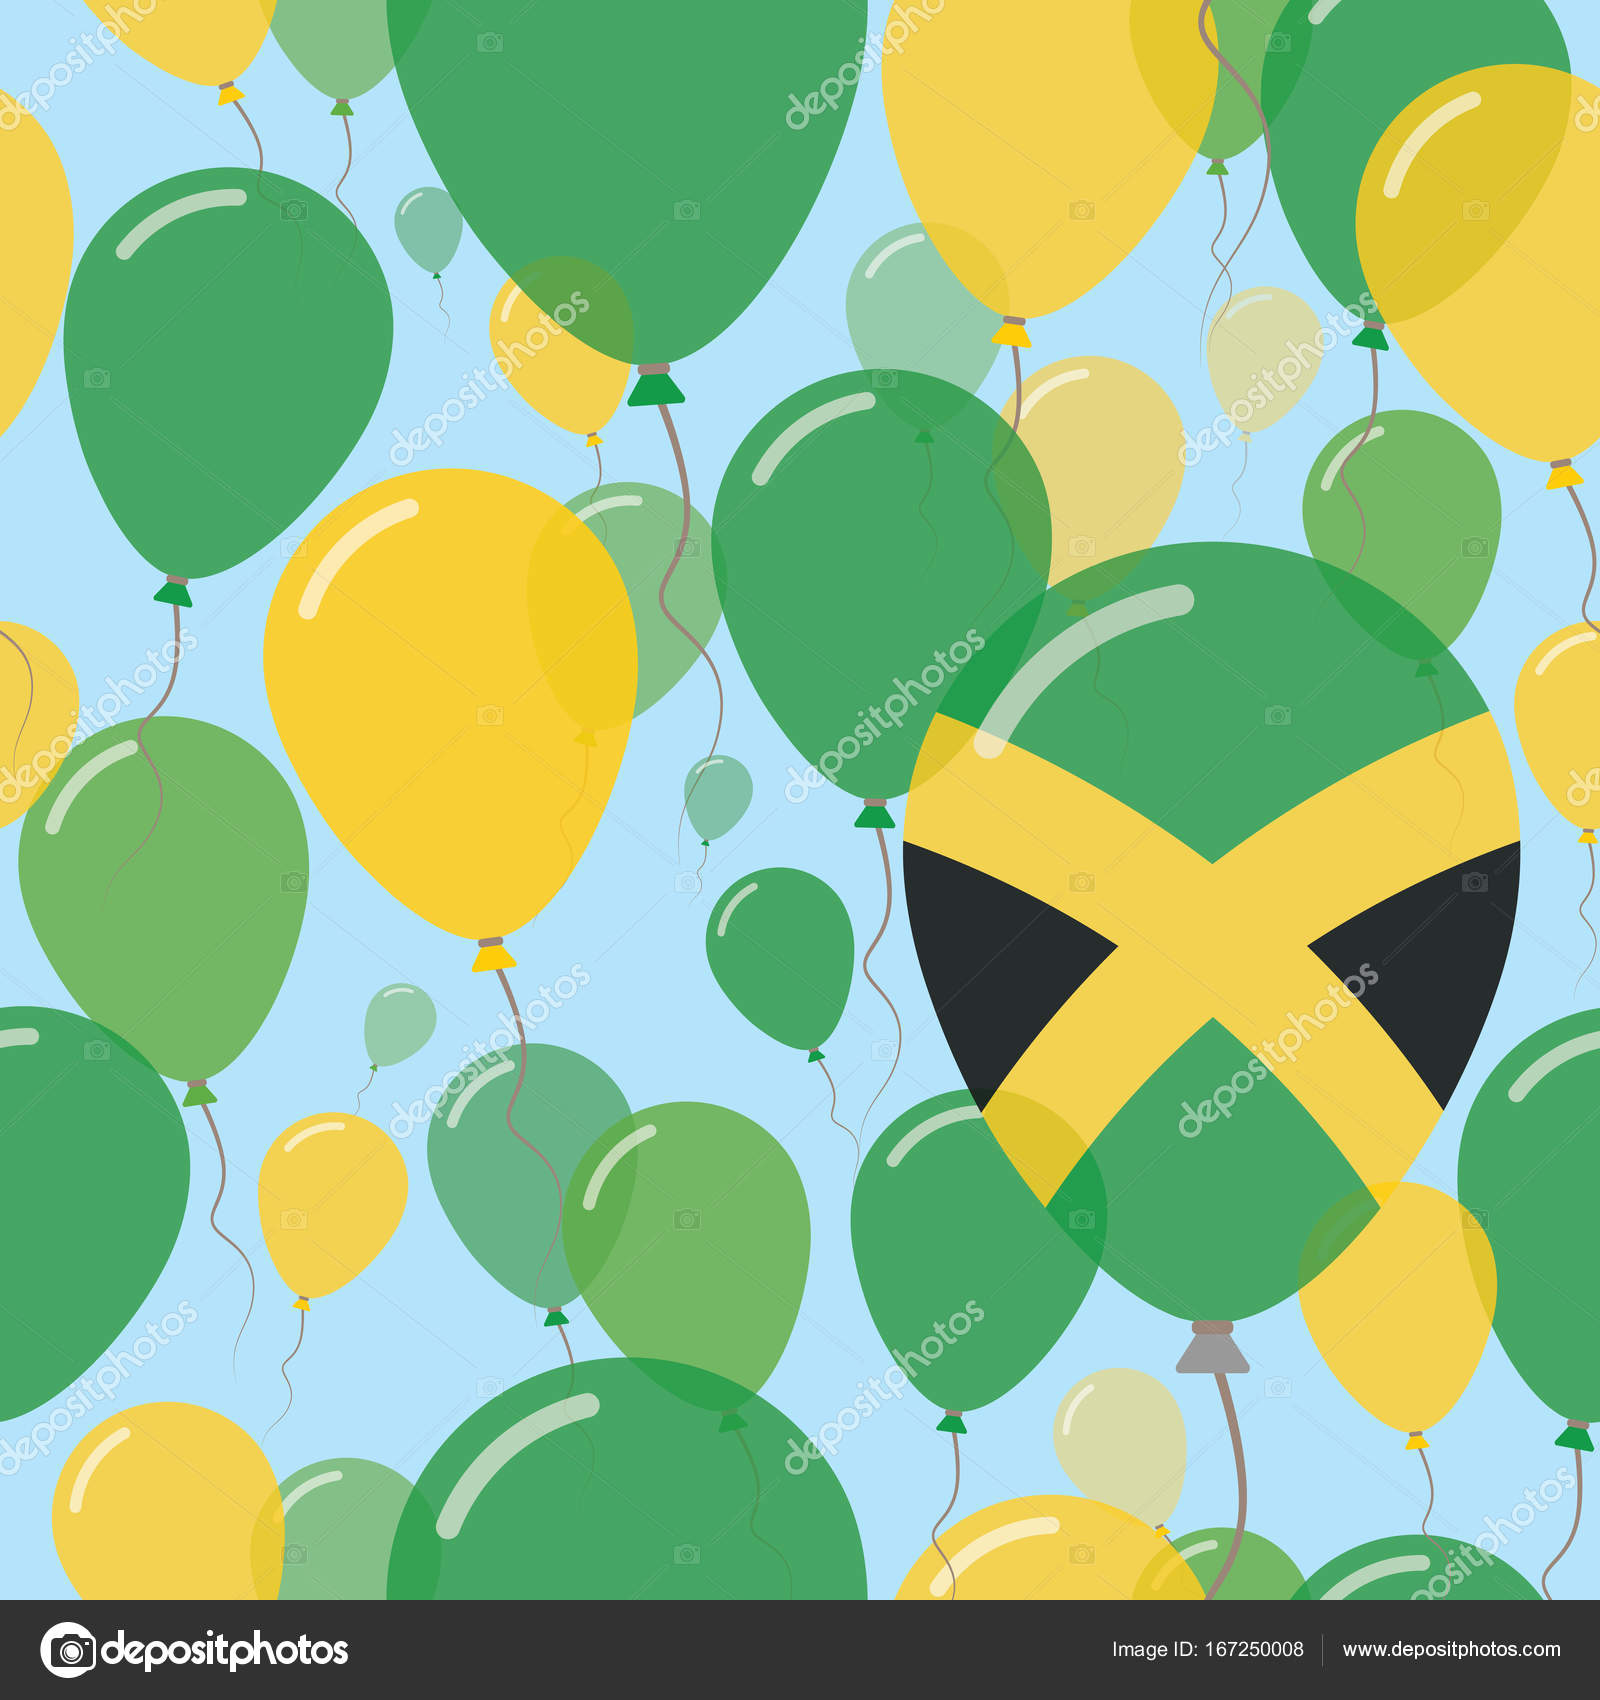 Jamaica National Day Flat Seamless Pattern Flying Celebration